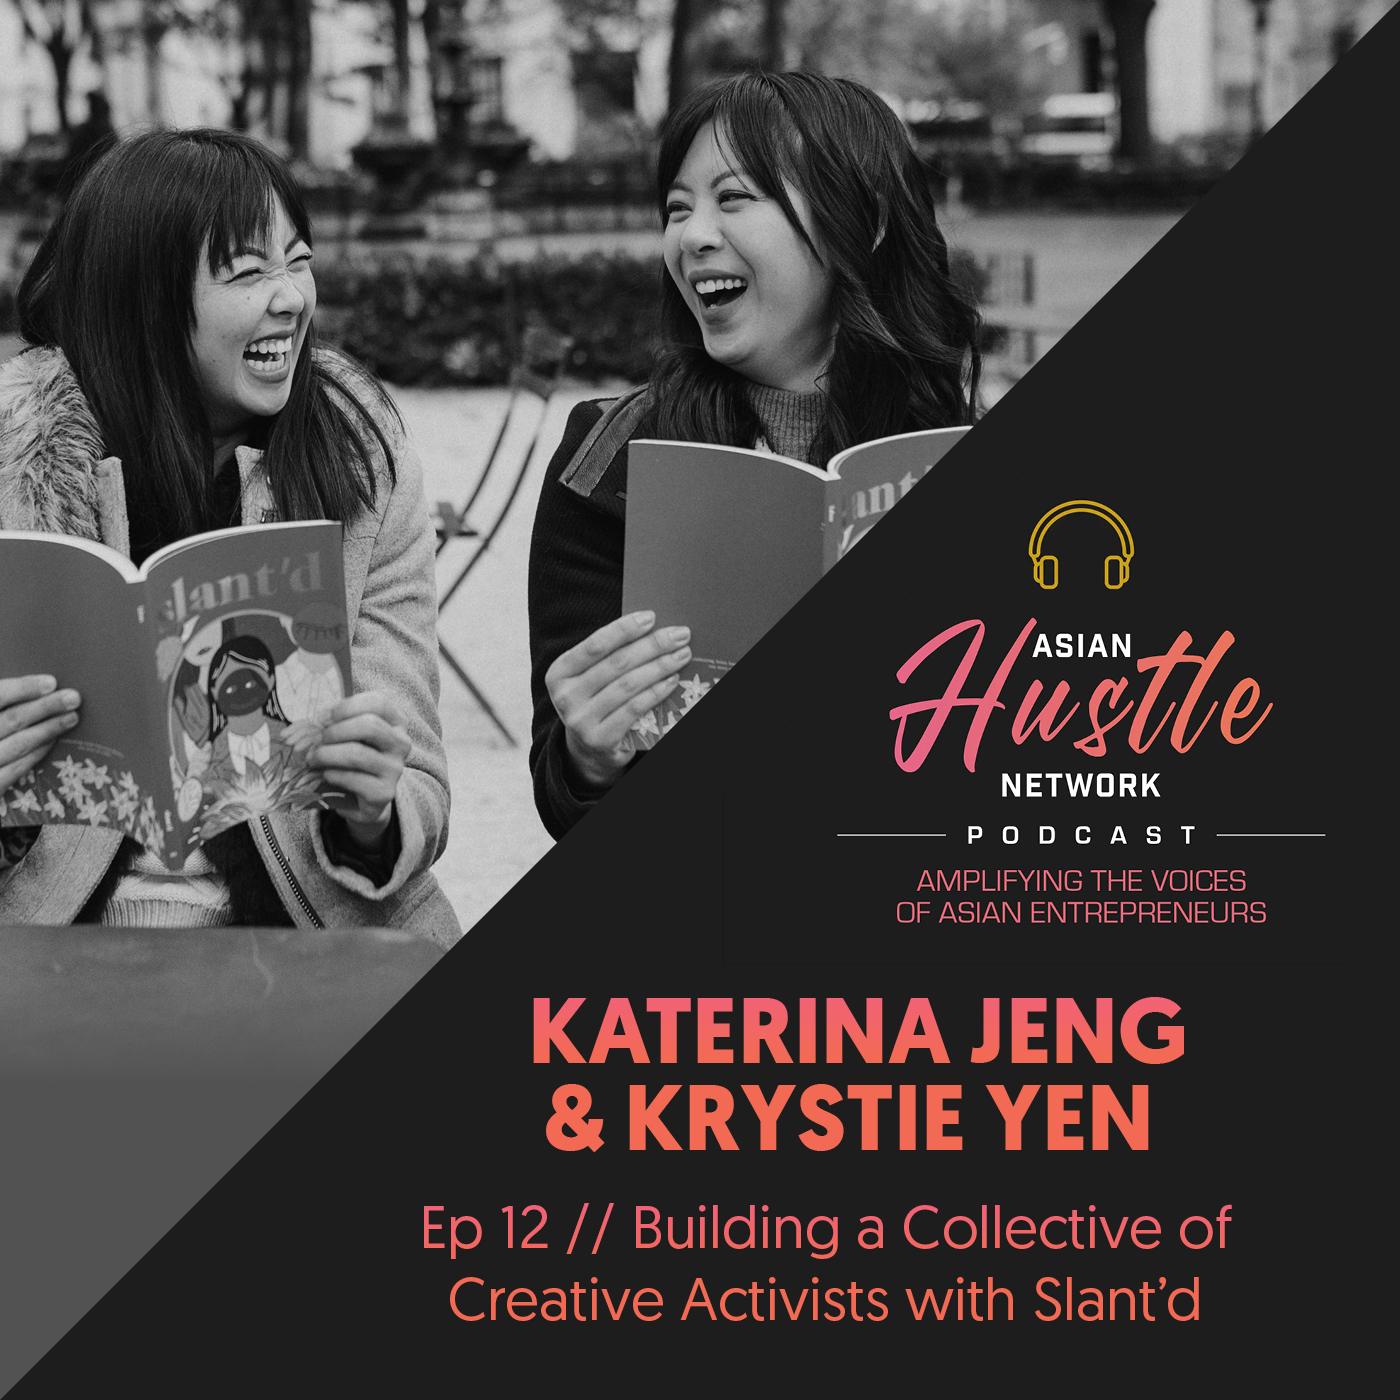 www.asianhustlenetwork.com: Katerina Jeng and Krystie Yen // Ep 12 // Building a Collective of Creative Activists with Slant'd